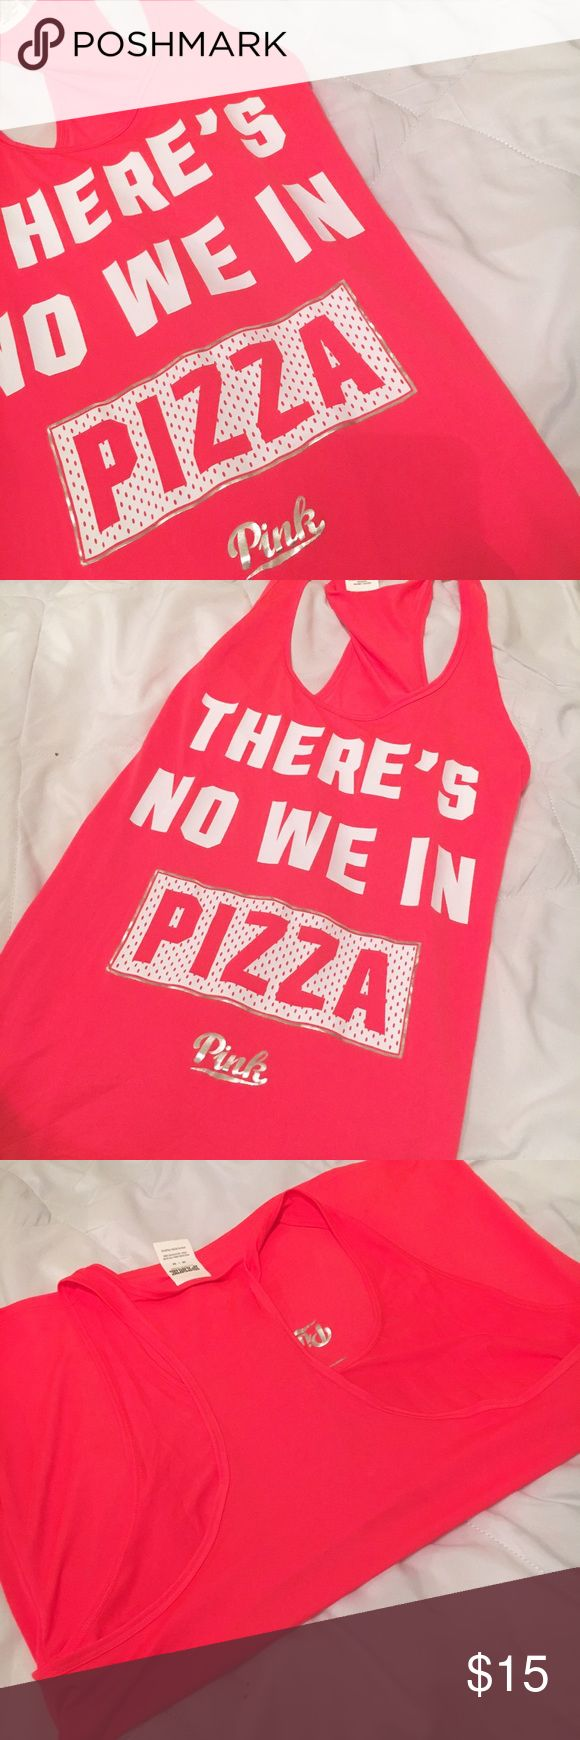 "PINK Victoria's Secret Workout Tank ""THERE'S NO WE IN PIZZA"" Tank. NWOT. Super cute and never worn. Is a M but fits more like a L/XL. PINK Victoria's Secret Tops Muscle Tees"